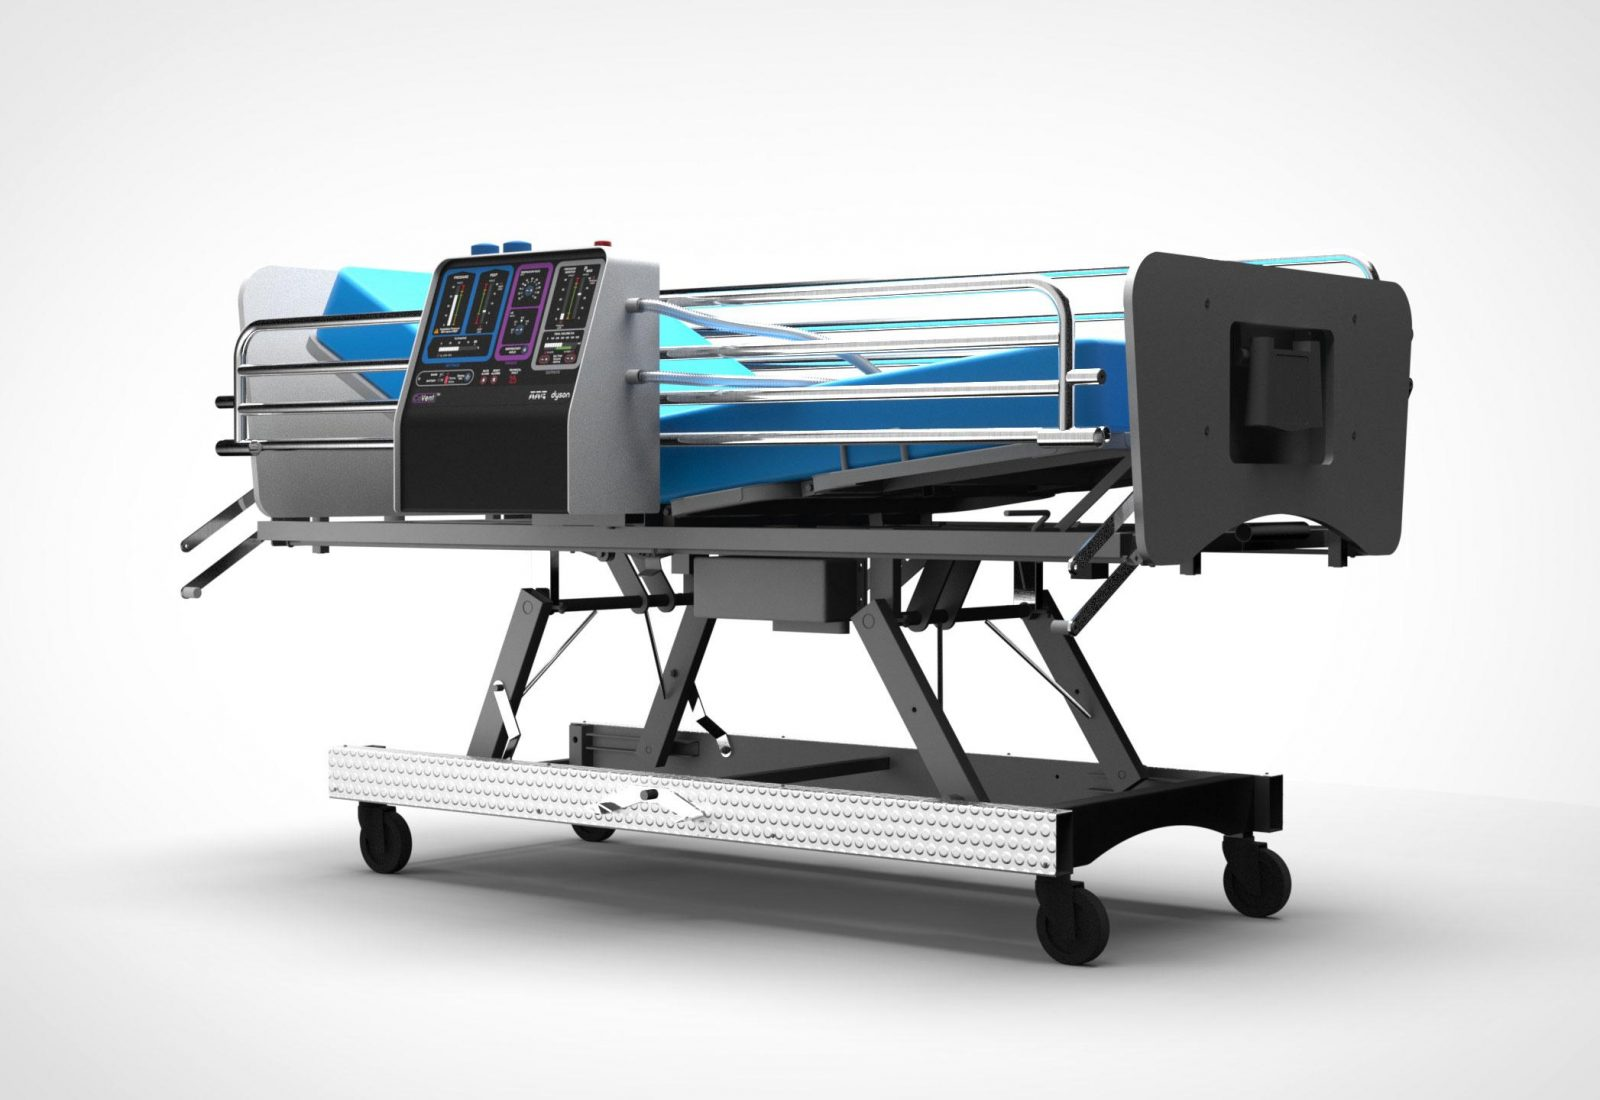 CoVent ventilator attached to a hosptal bed